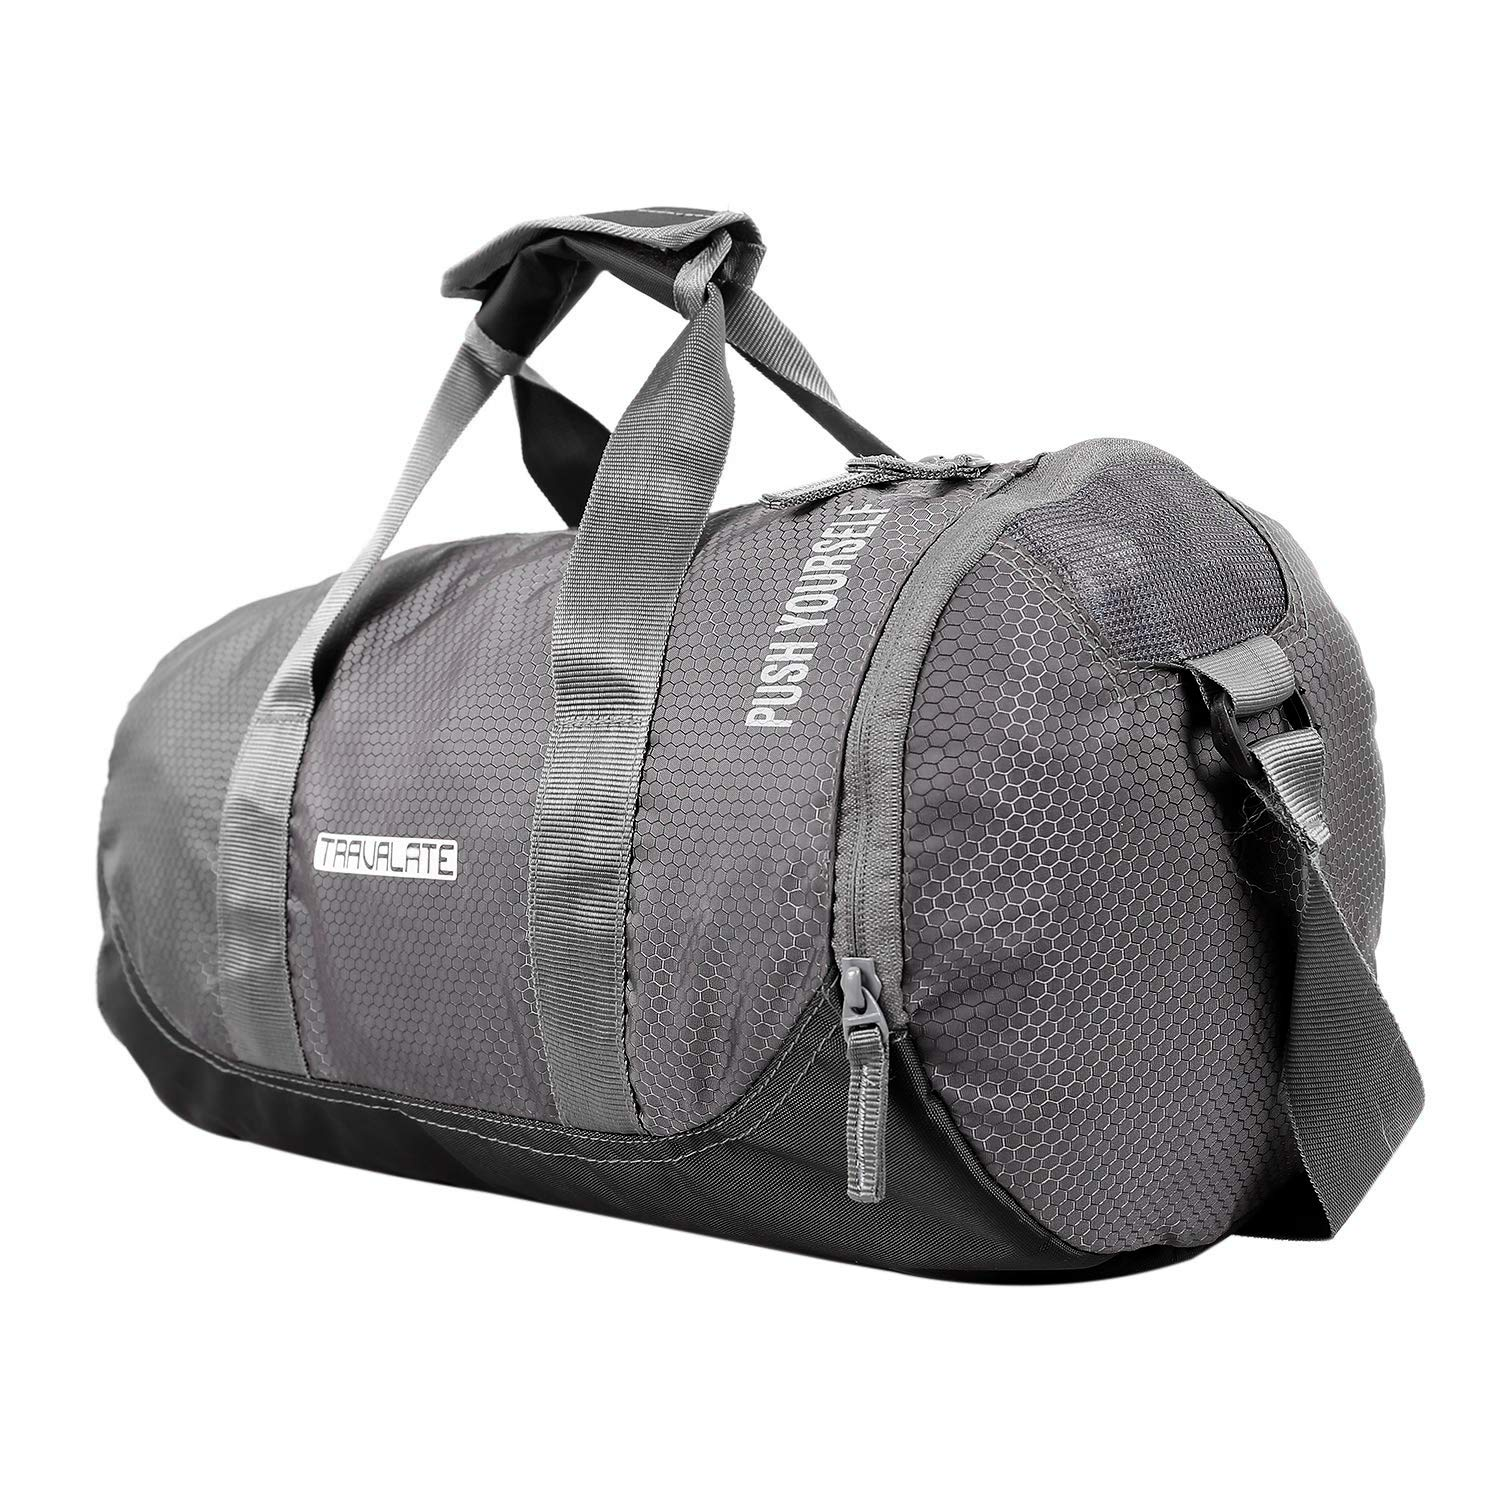 TRAVALATE Polyester Water Resistant Gym Sports Duffel Bag for Men and Women  with Shoes Compartment  Amazon.in  Bags 69ad7ea3aa571